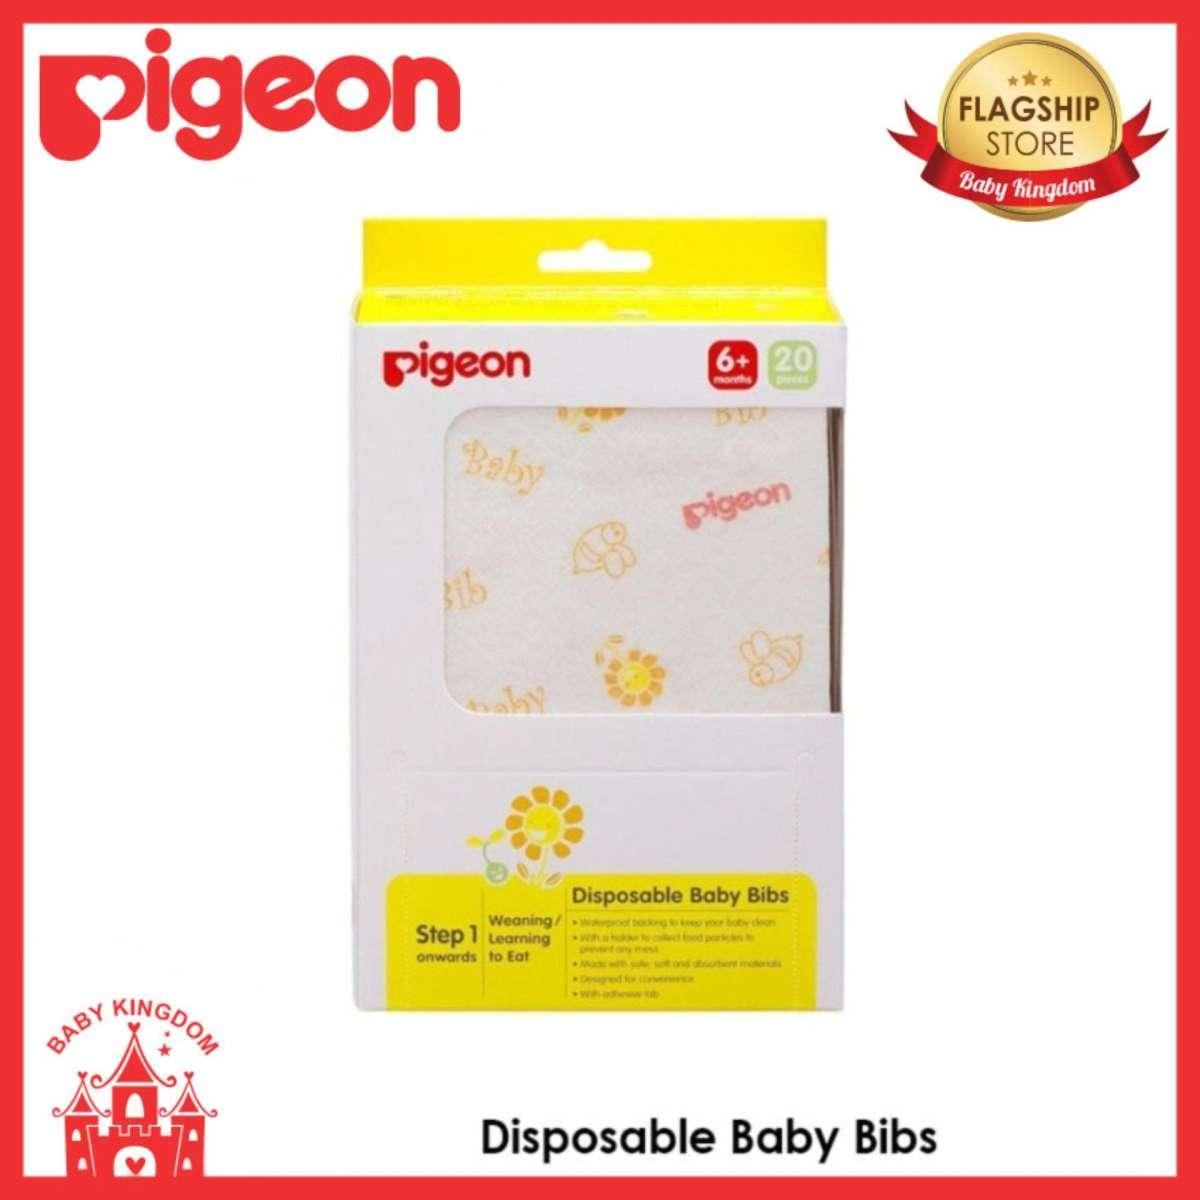 Pigeon Disposable Bibs By Baby Kingdom.